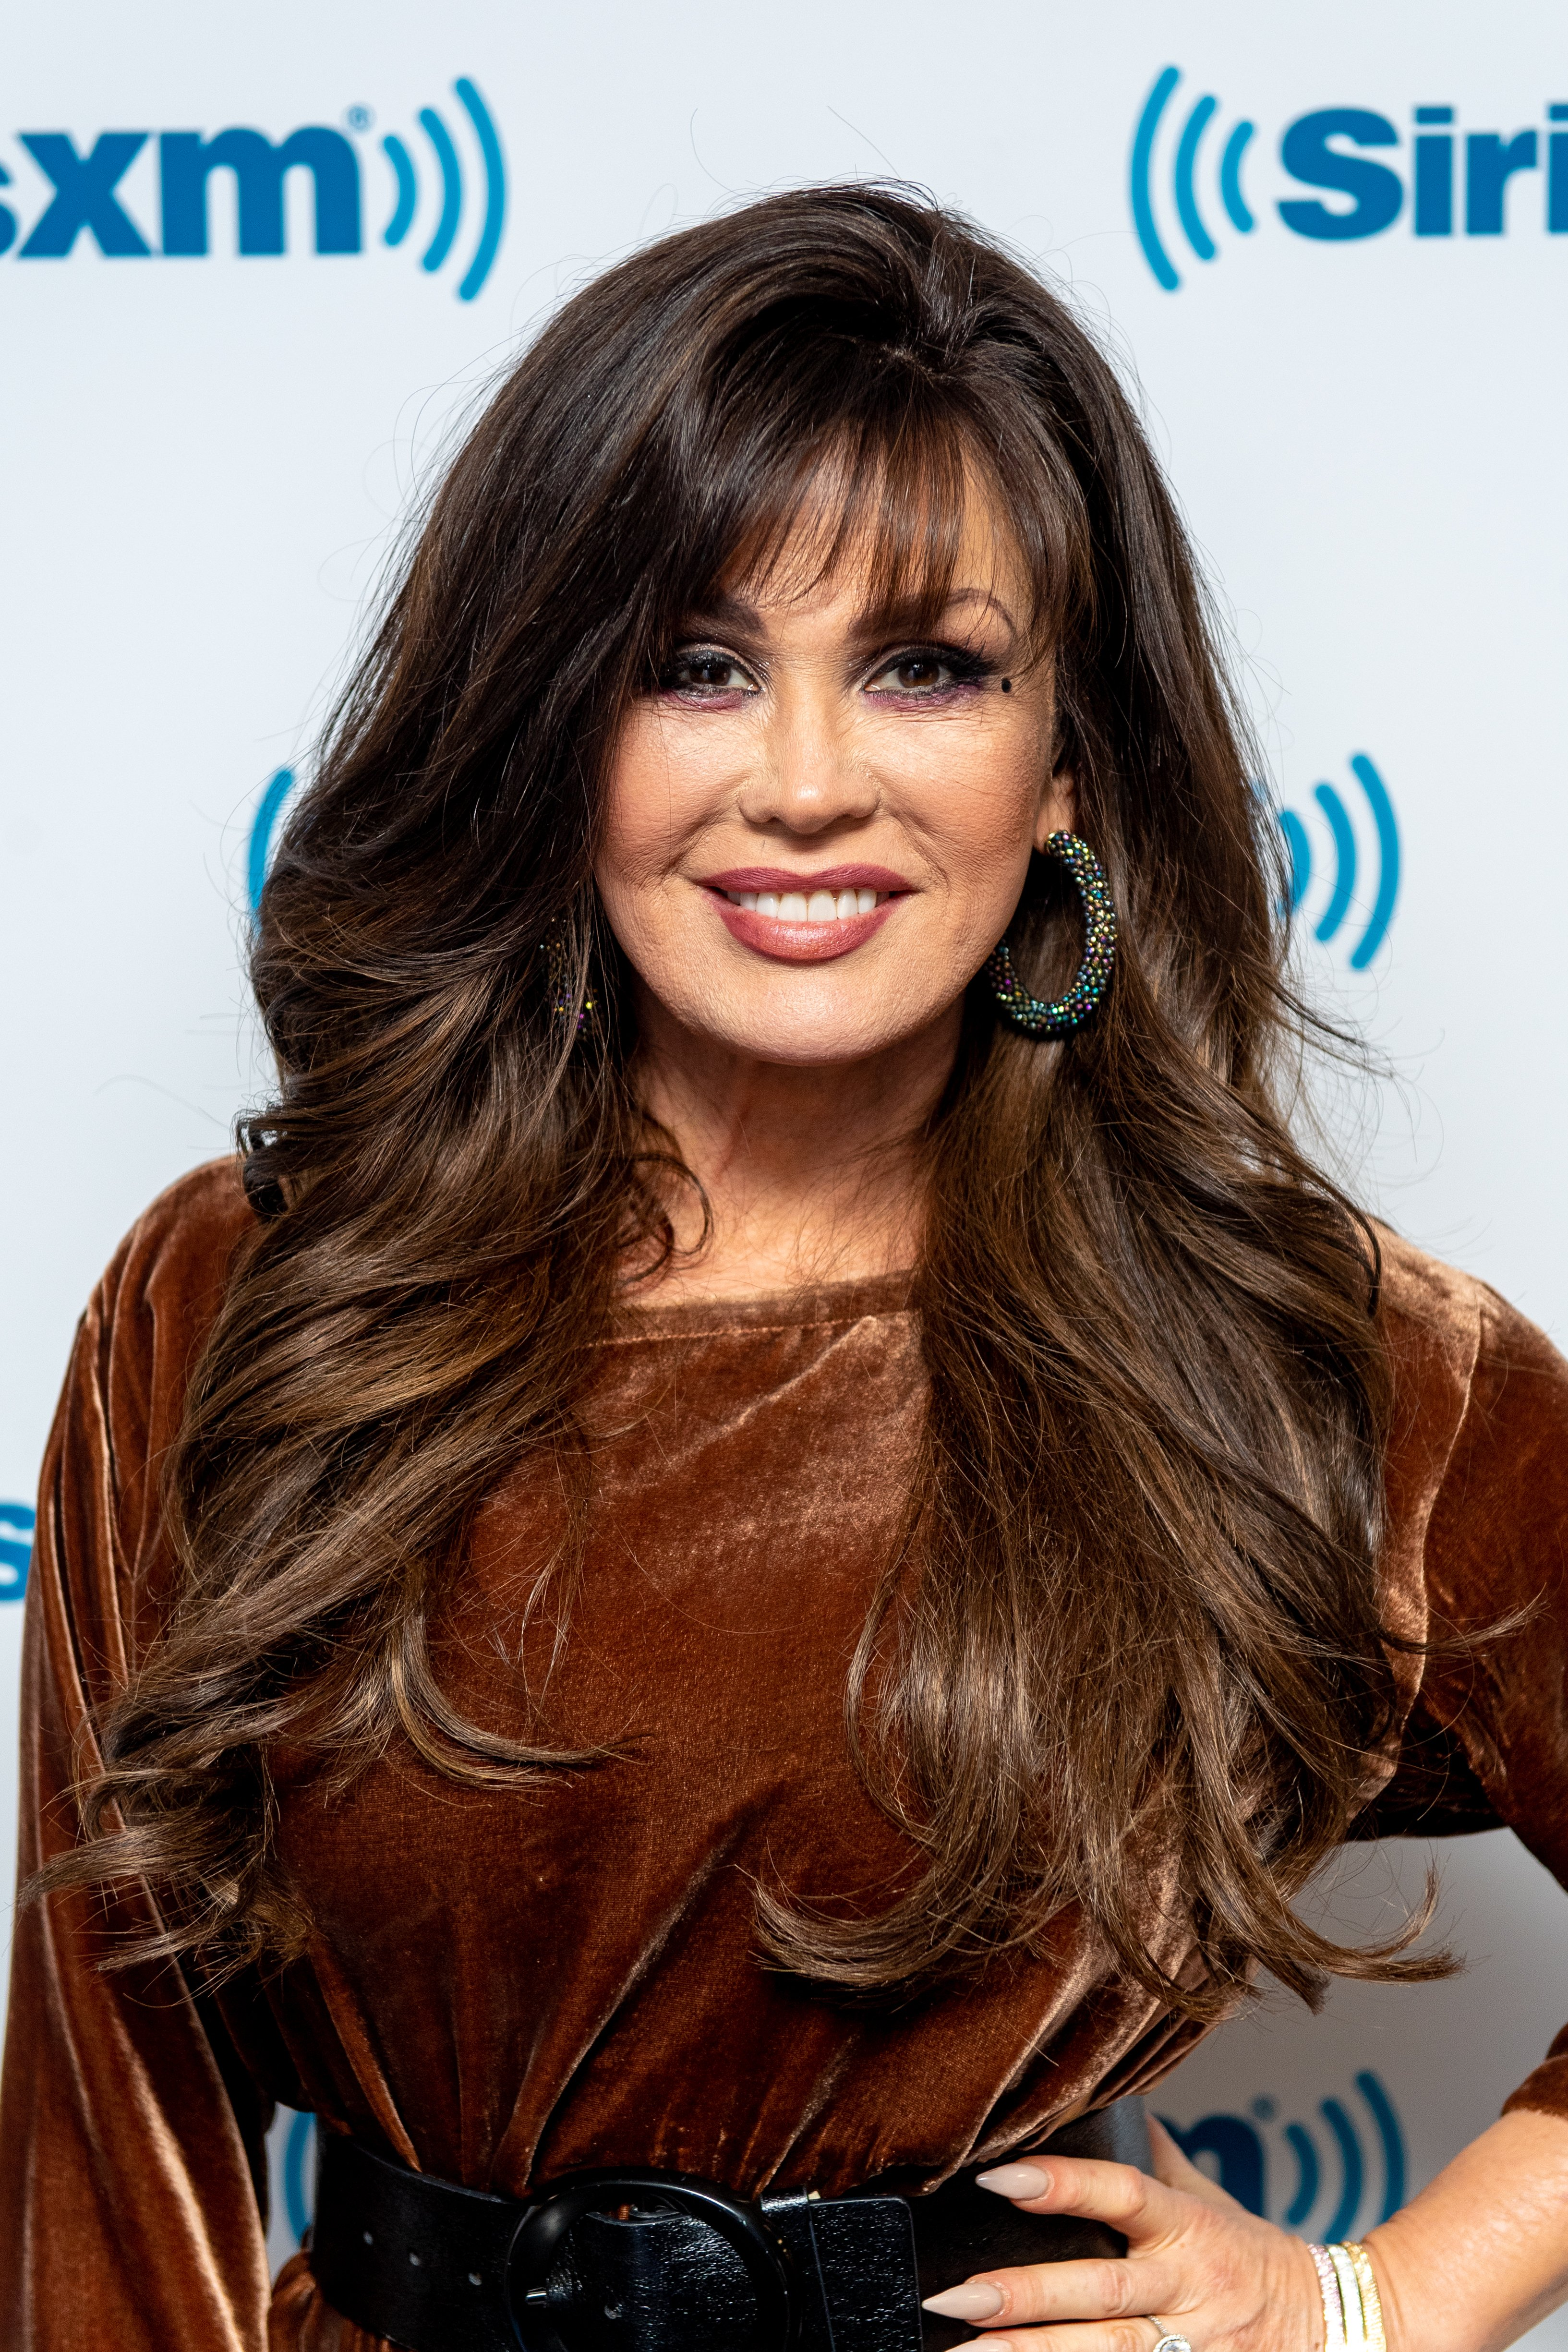 Marie Osmond visits SiriusXM Studios on January 08, 2019, in New York City. | Source: Getty Images.